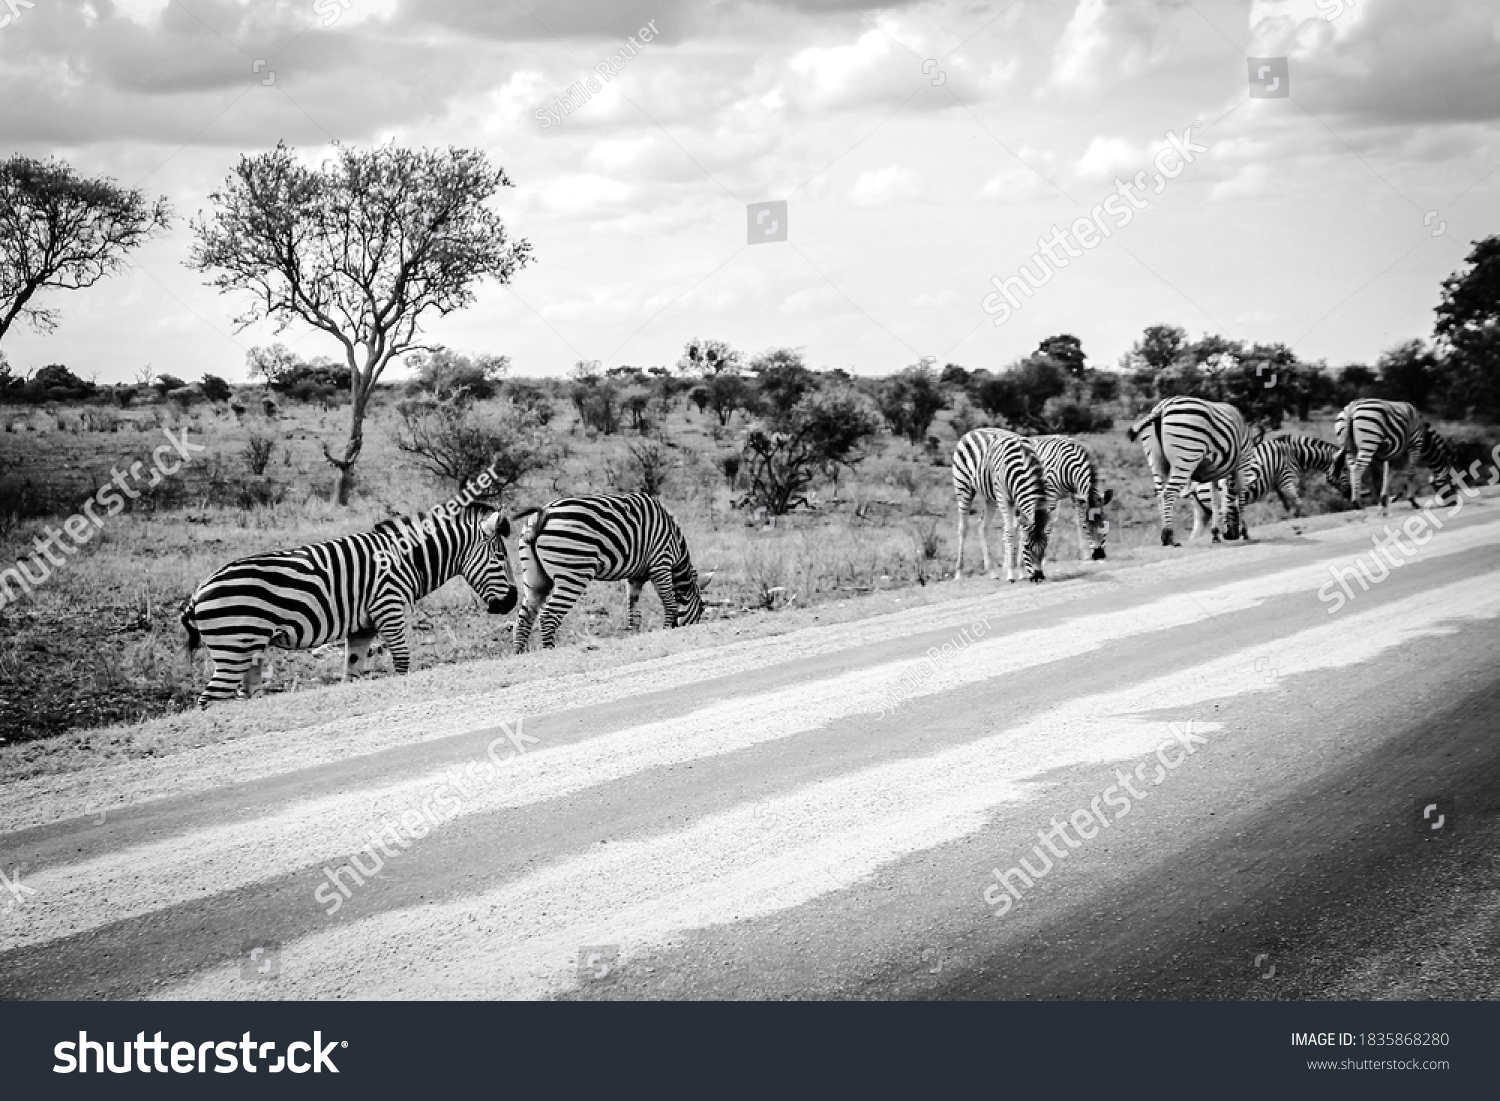 stock-photo-a-grazing-herd-of-plains-zeb